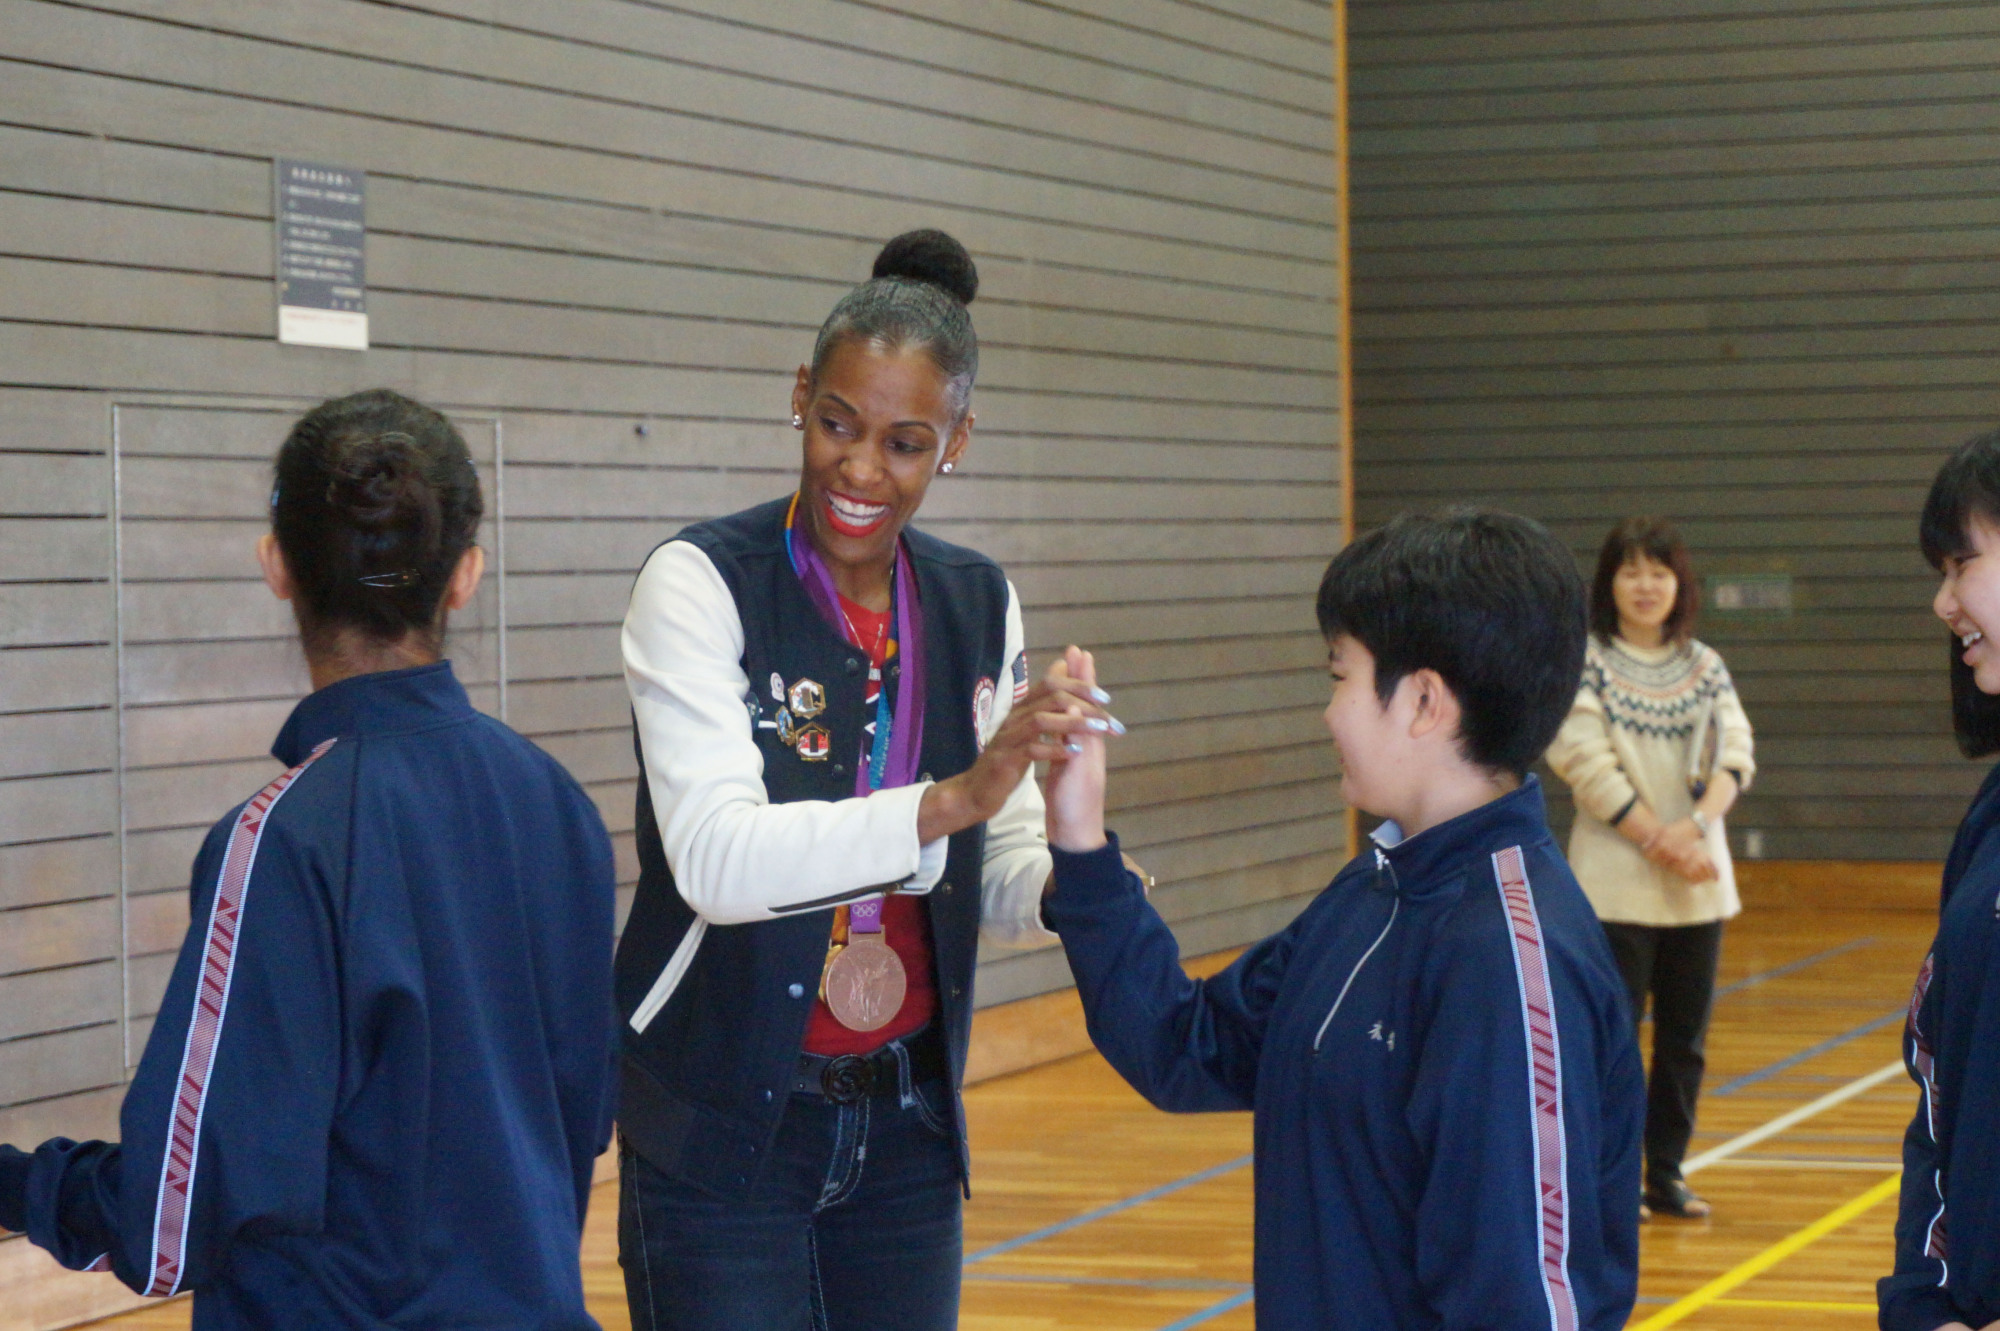 Two-time Olympic gold medalist DeeDee Trotter (center) interacts with students at Funabashi Kibou Junior High School in Tokyo's Setagaya Ward on Tuesday. | JASON COSKREY